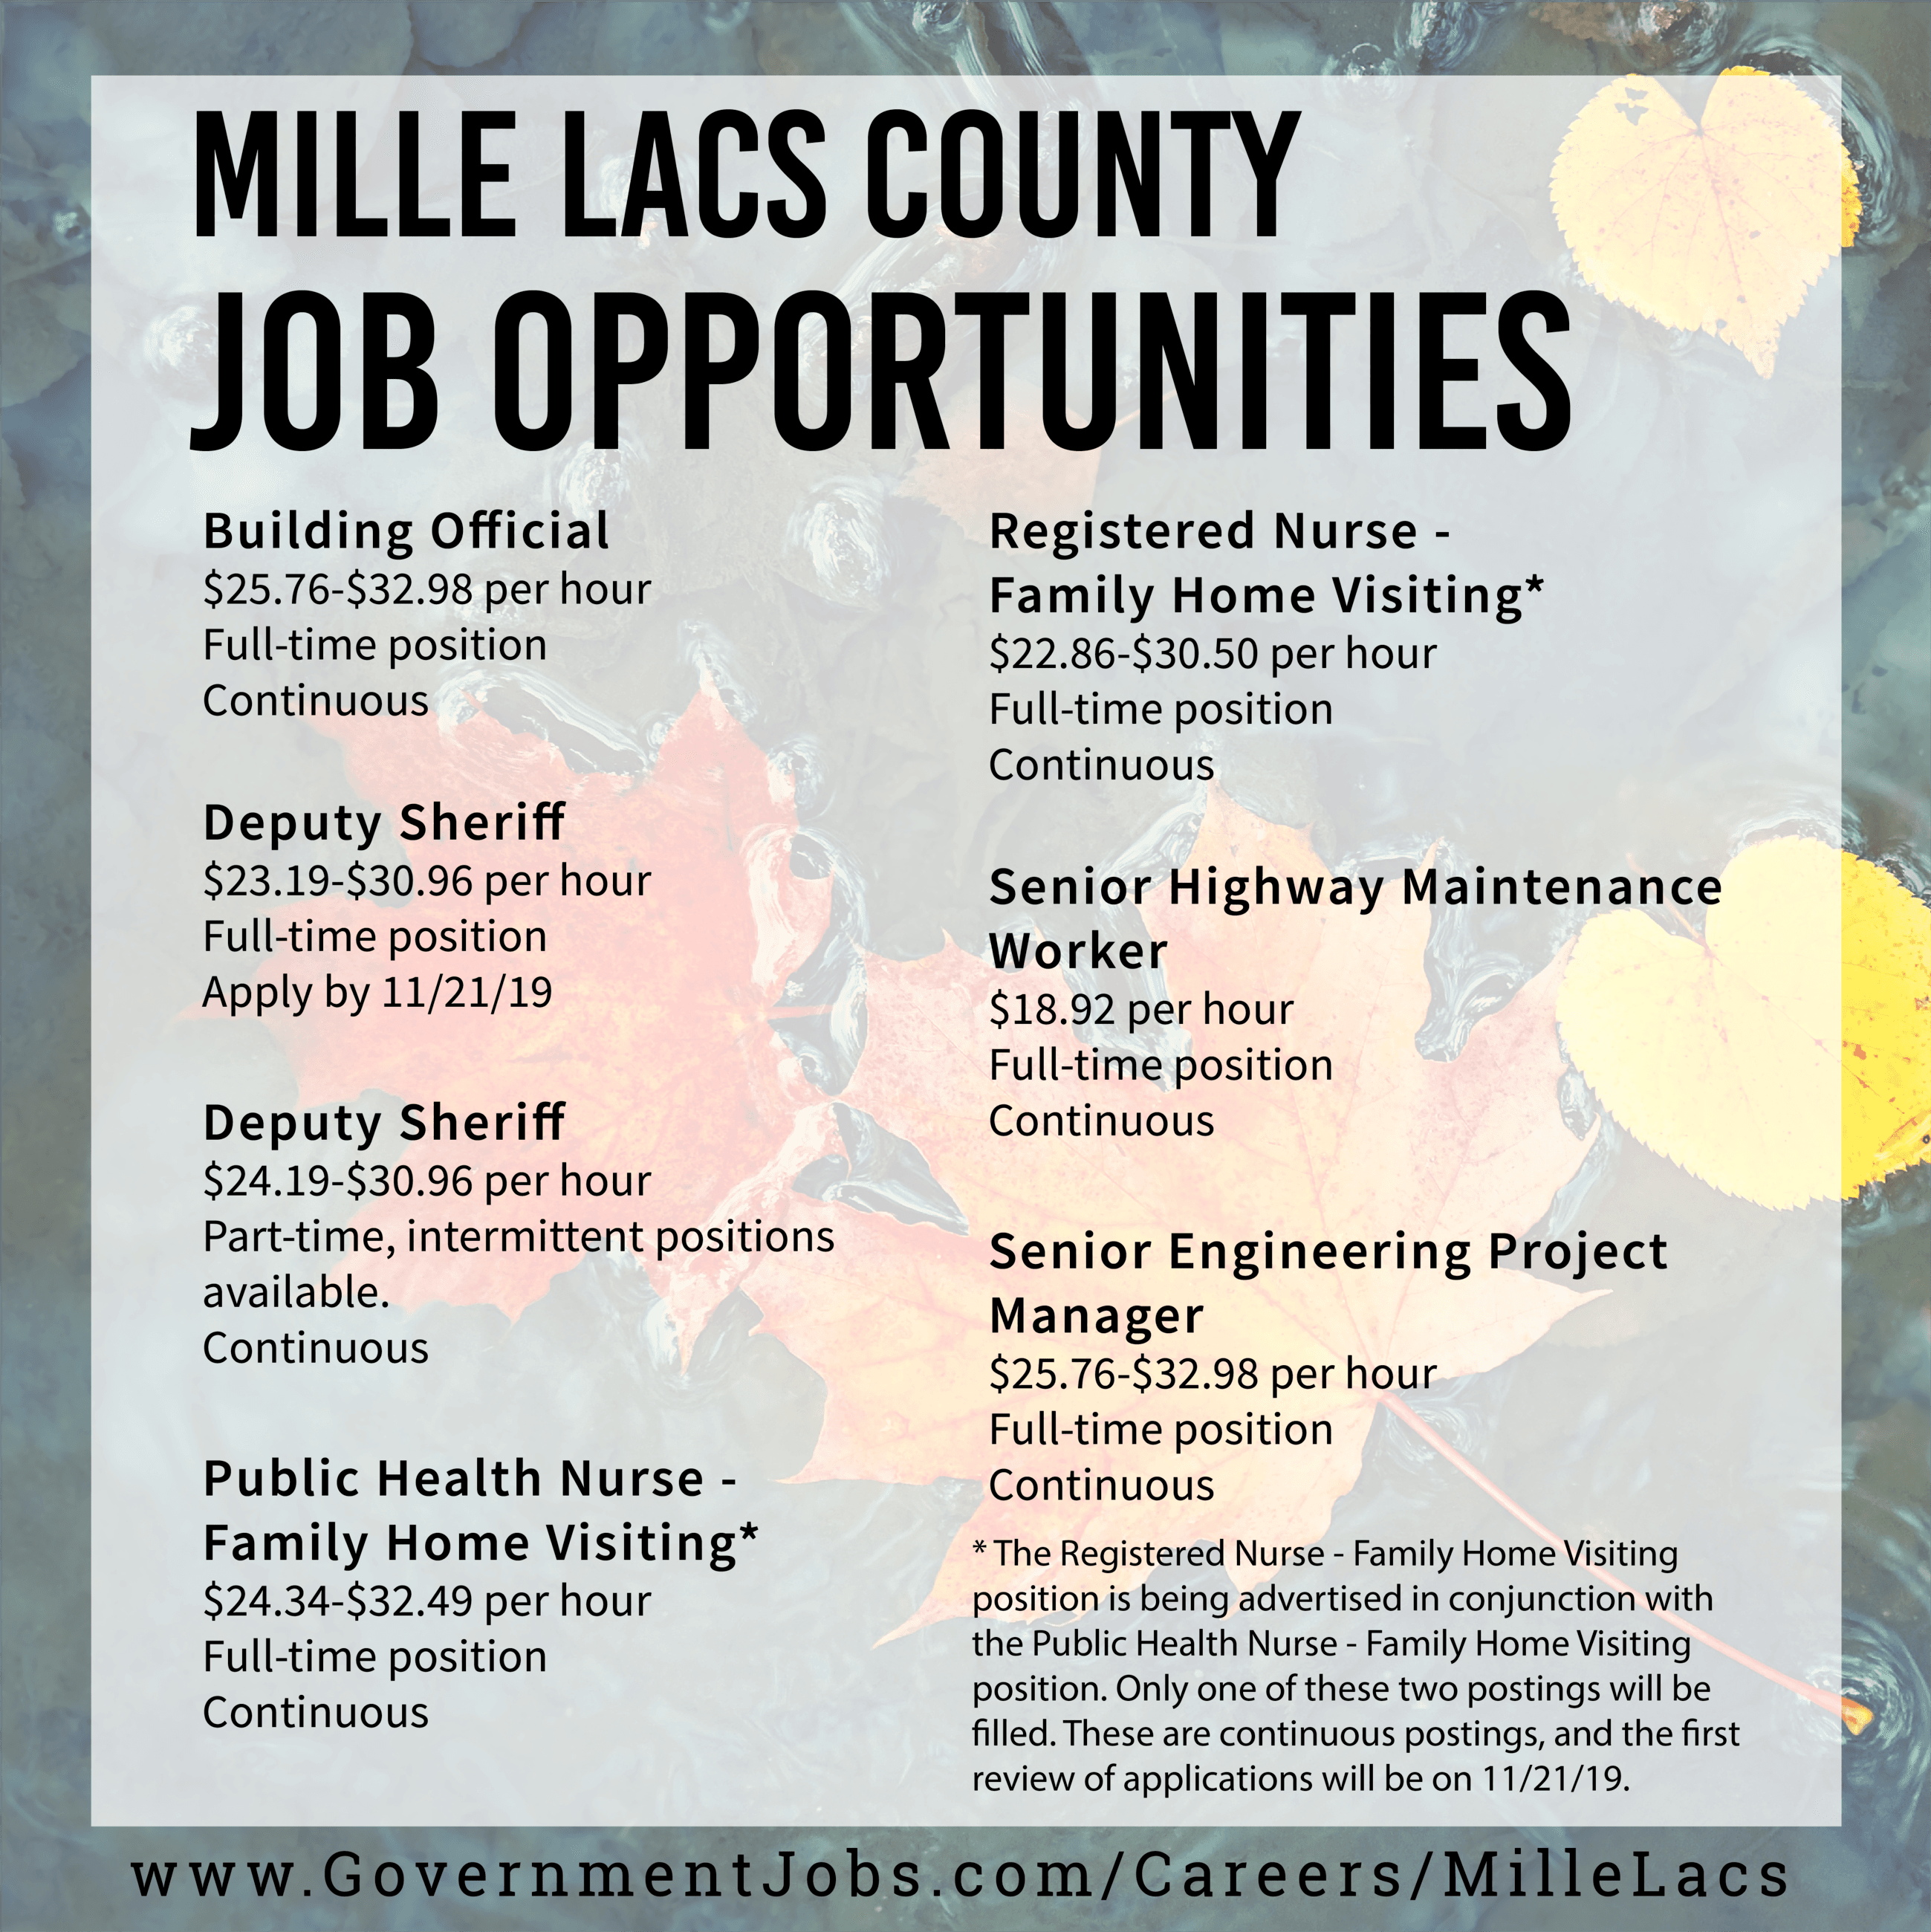 Job Opportunities in Mille Lacs County Flyer (all flyer text is available below.)